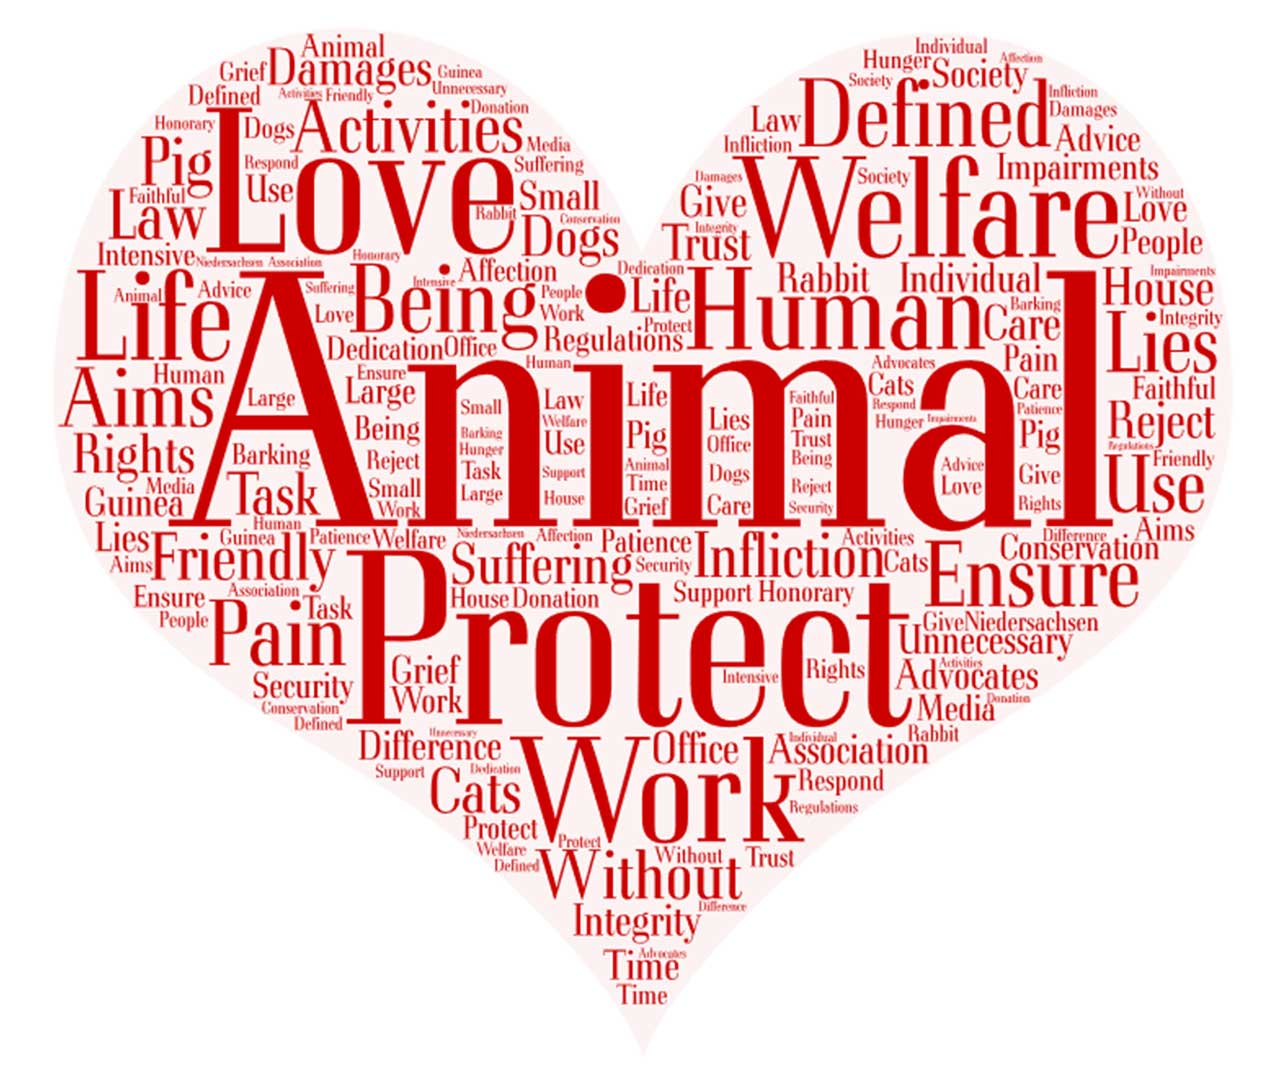 word cloud for animal welfare groups